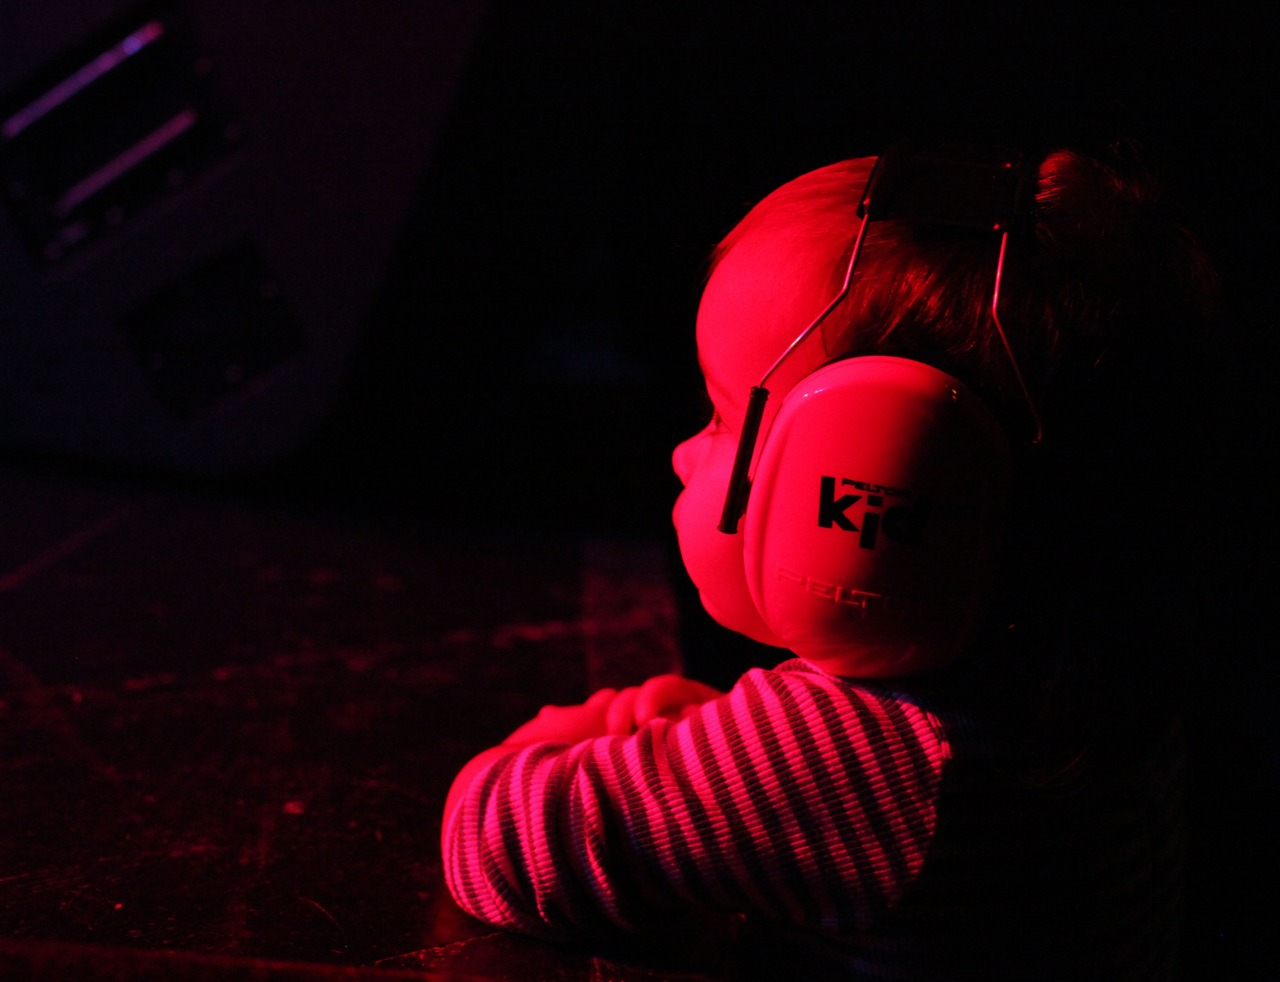 crumbley :     Oh, you know, just a baby watching the Everything Independent showcase at Arlenes Grocery Wednesday October 19th.     G caught in Action at my recent CMJ showcase, stunning photo!